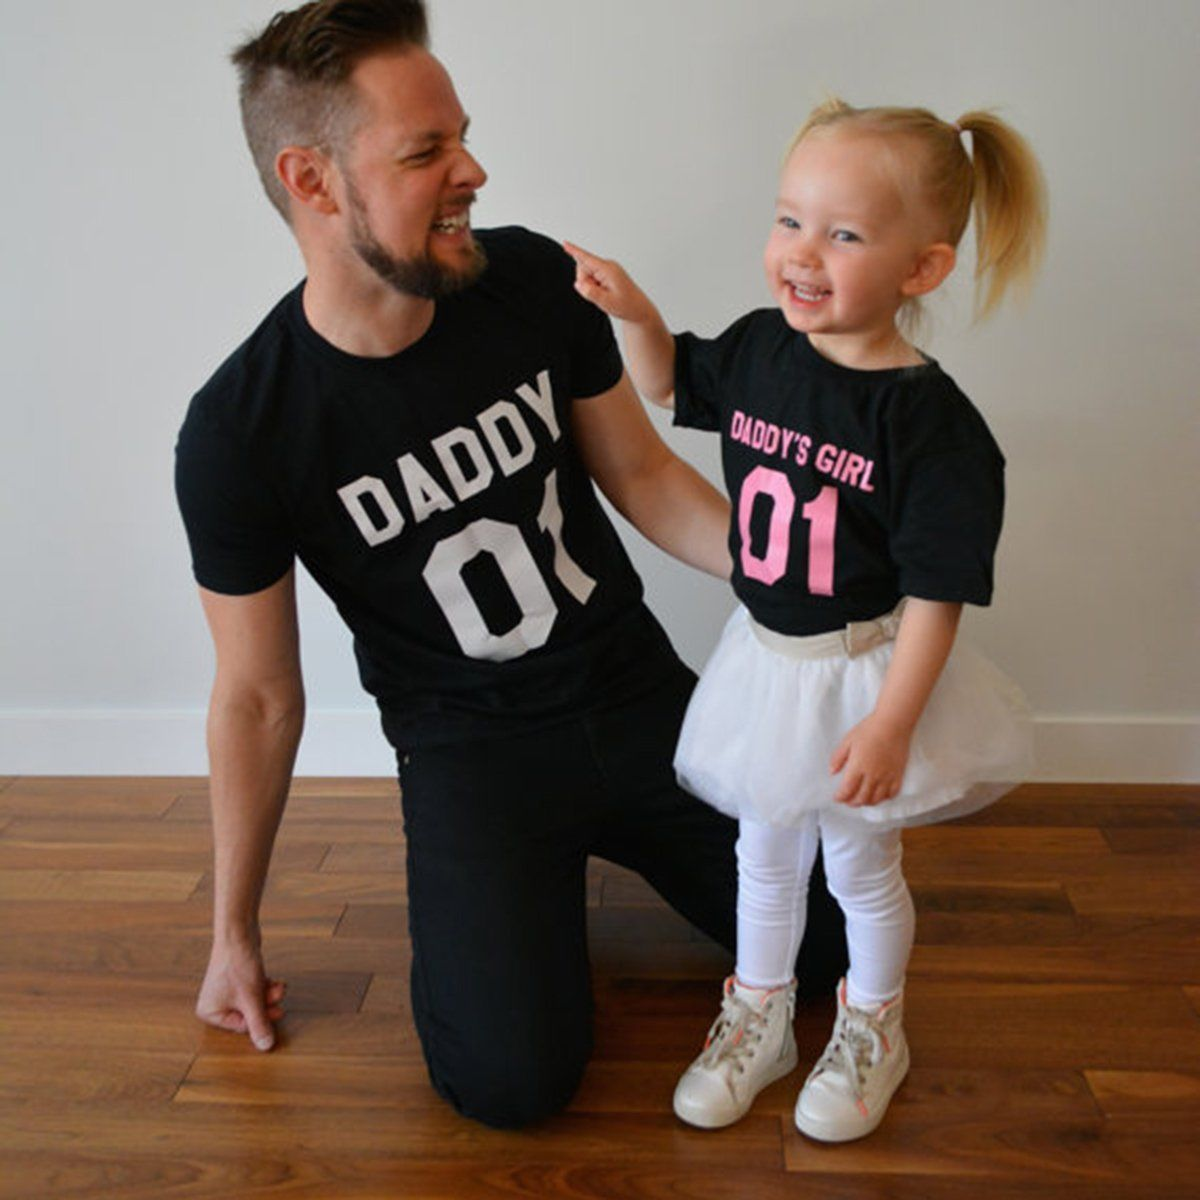 Family Matching Clothes Father Daughter T Shirt DADDY'S GIRL Tees Shirts Tops Fathers Day Gift Summer Men short sleeve t shirt kuyomens 4 pcs man t shirts tees shirt homme new arrival summer short sleeve men s t shirt male tshirts camiseta t shirt men